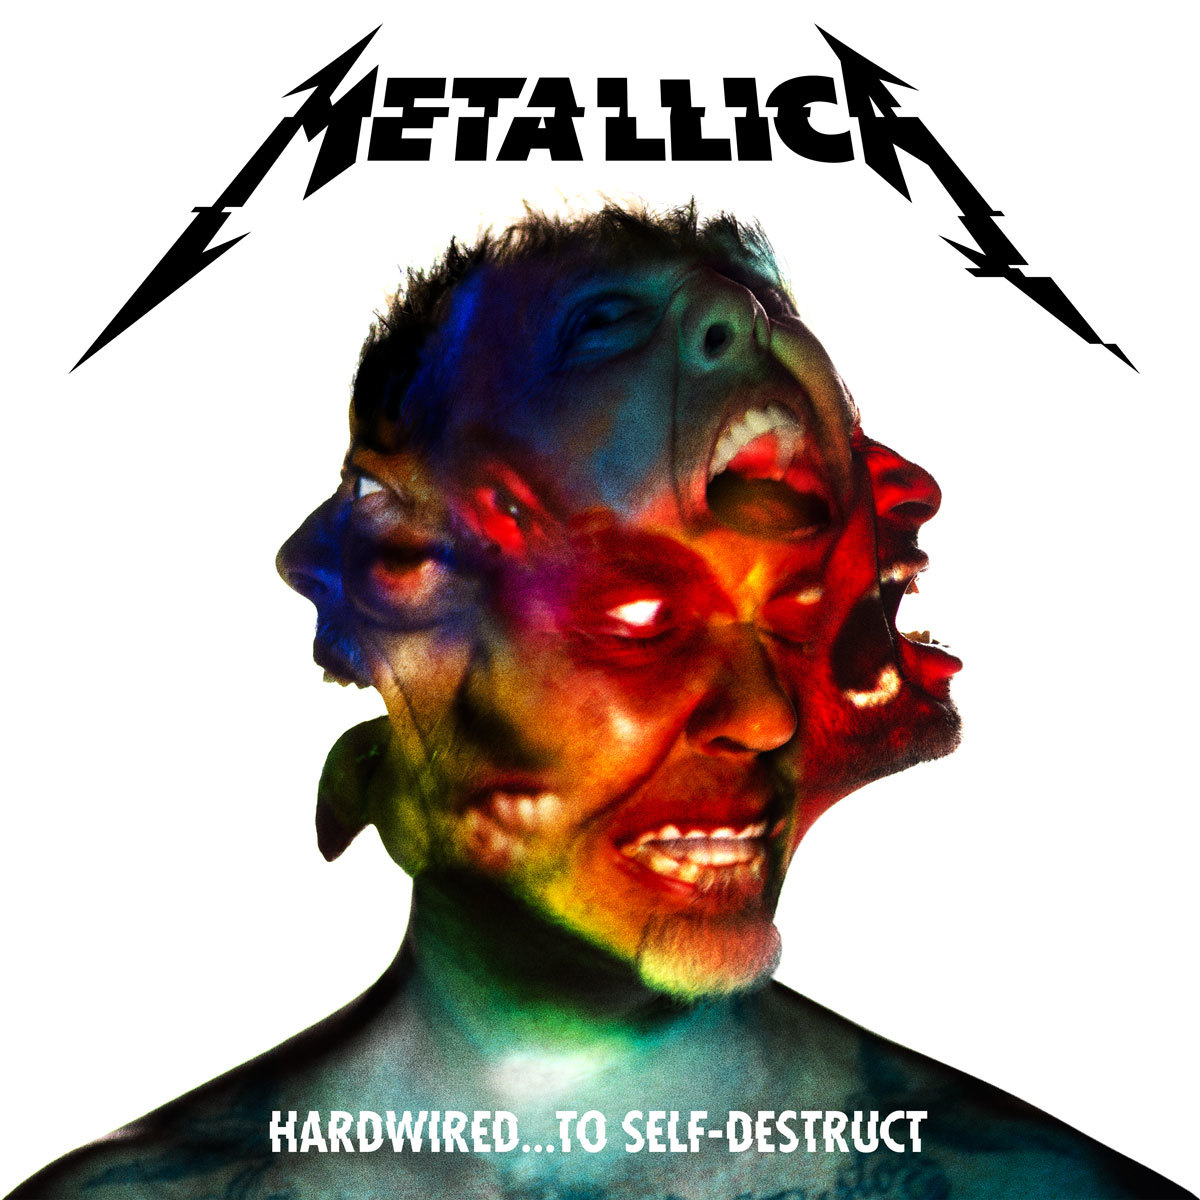 jaquettes4/Metallica_Hardwired-To-Self-Destruct.jpeg